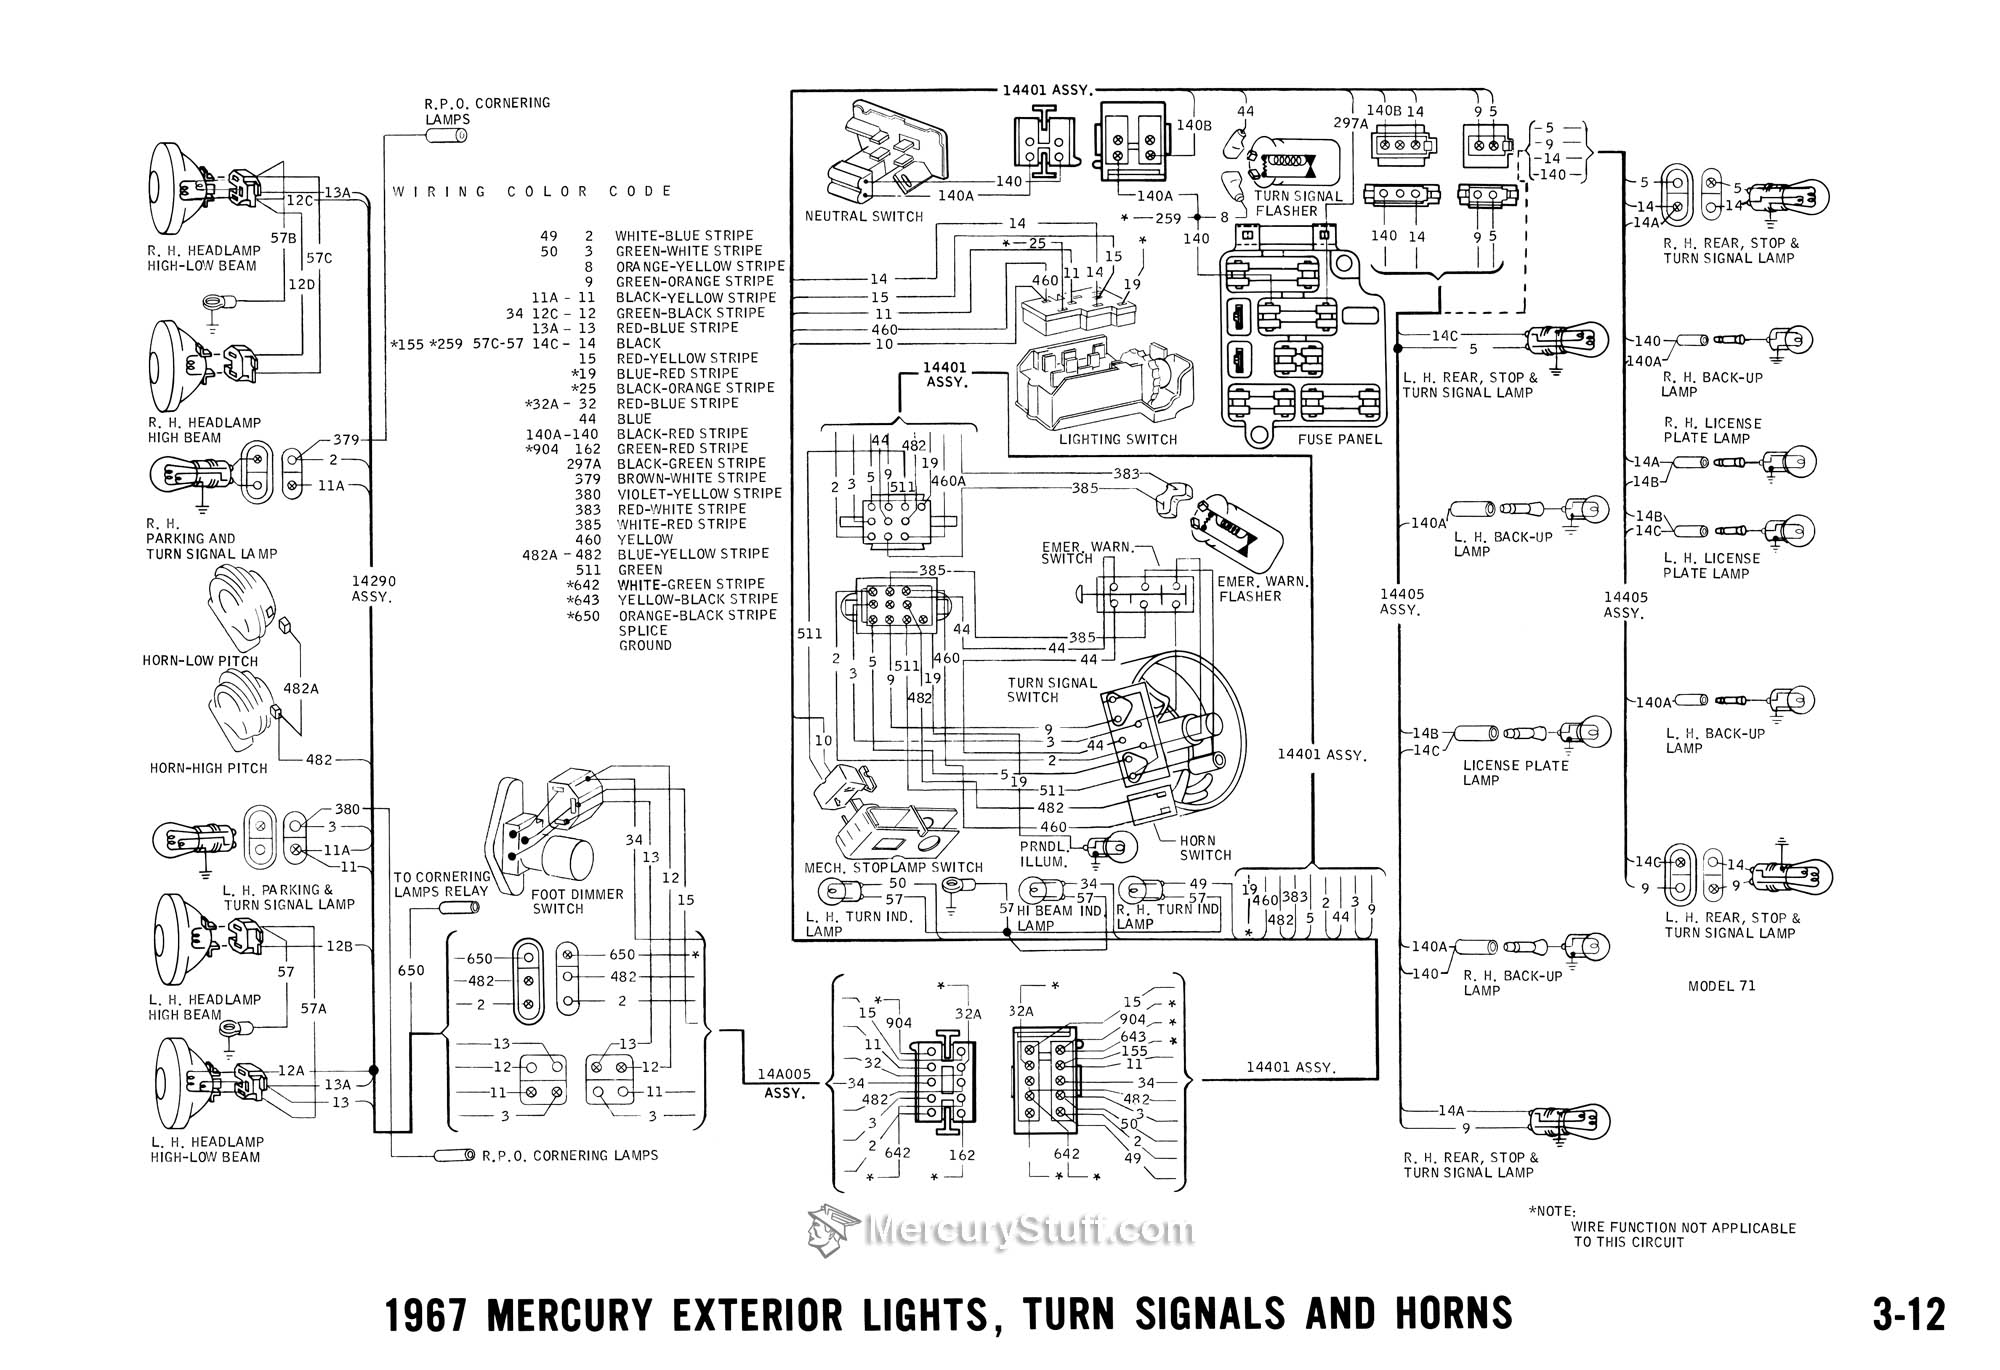 cornering lights 1966 mercury mercury forum mercury rh mercuryforum com 1997 Mercury Outboard Wiring Diagram Mercury Outboard Motor Wiring Diagram